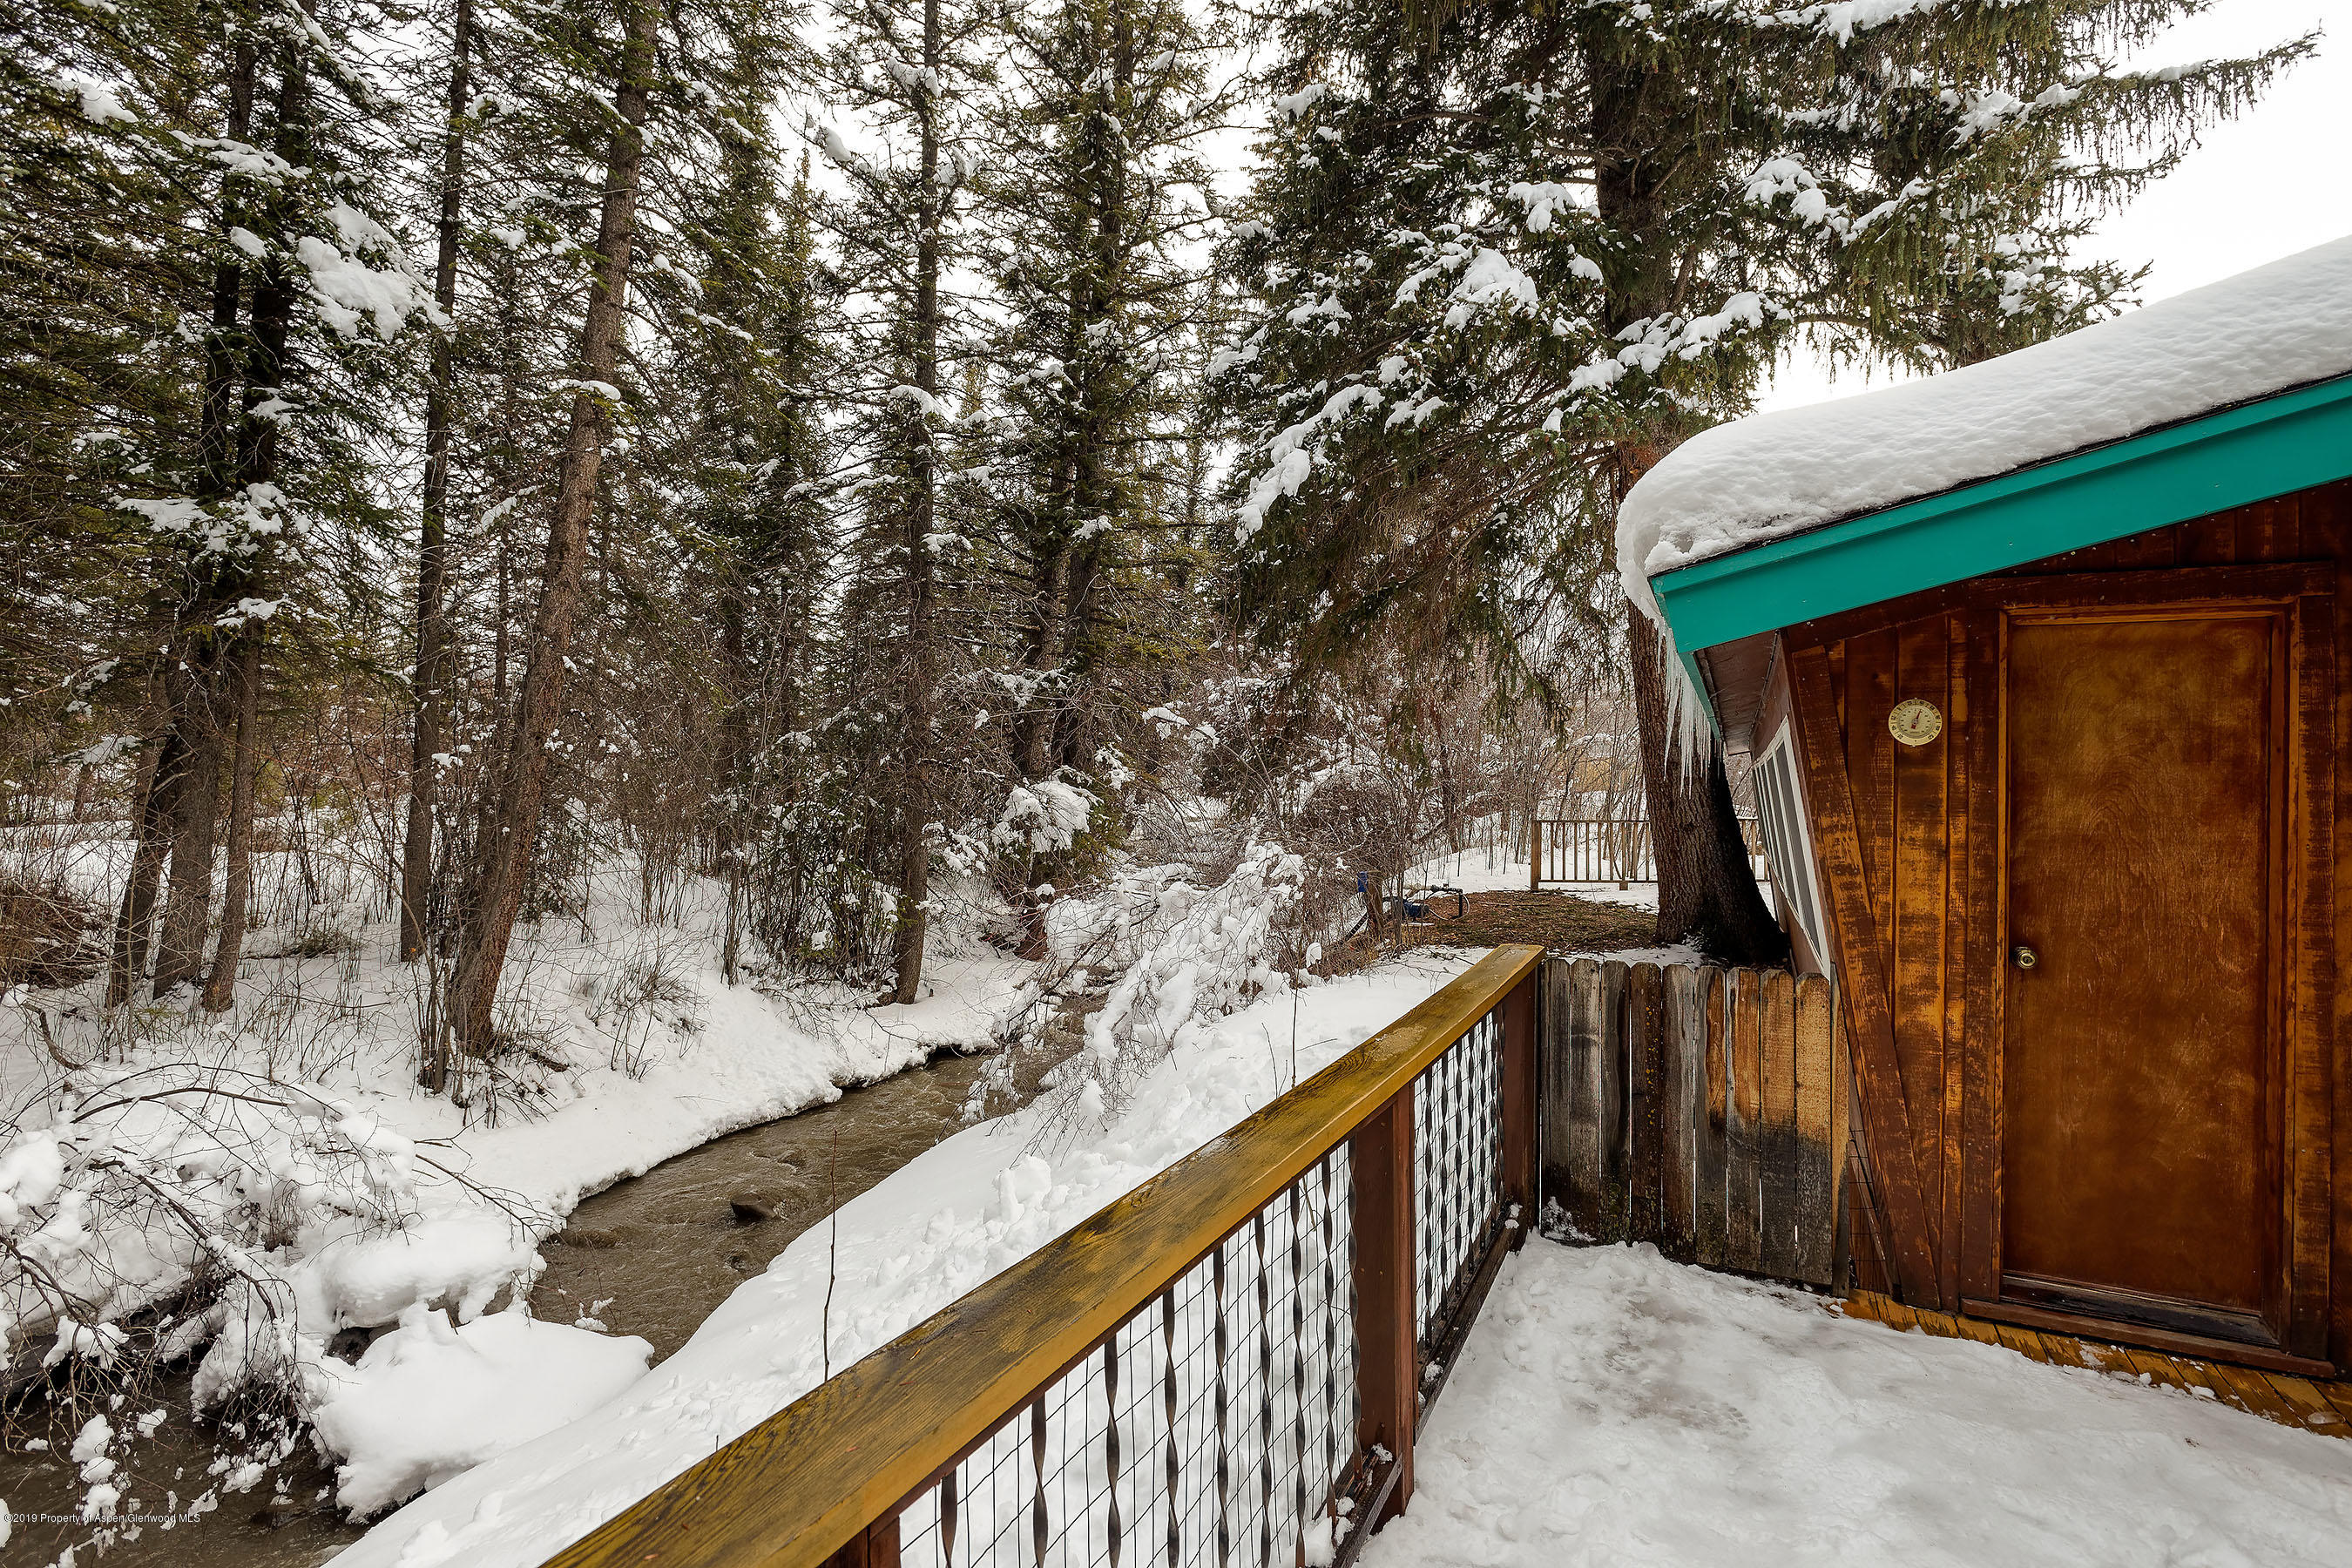 Lovely Cottage on  Capitol Creek with easy access to Aspen and  Willits.  Warm and Inviting.Tastefully furnished  The  sounds from Capitol Creek flow through the home year round..